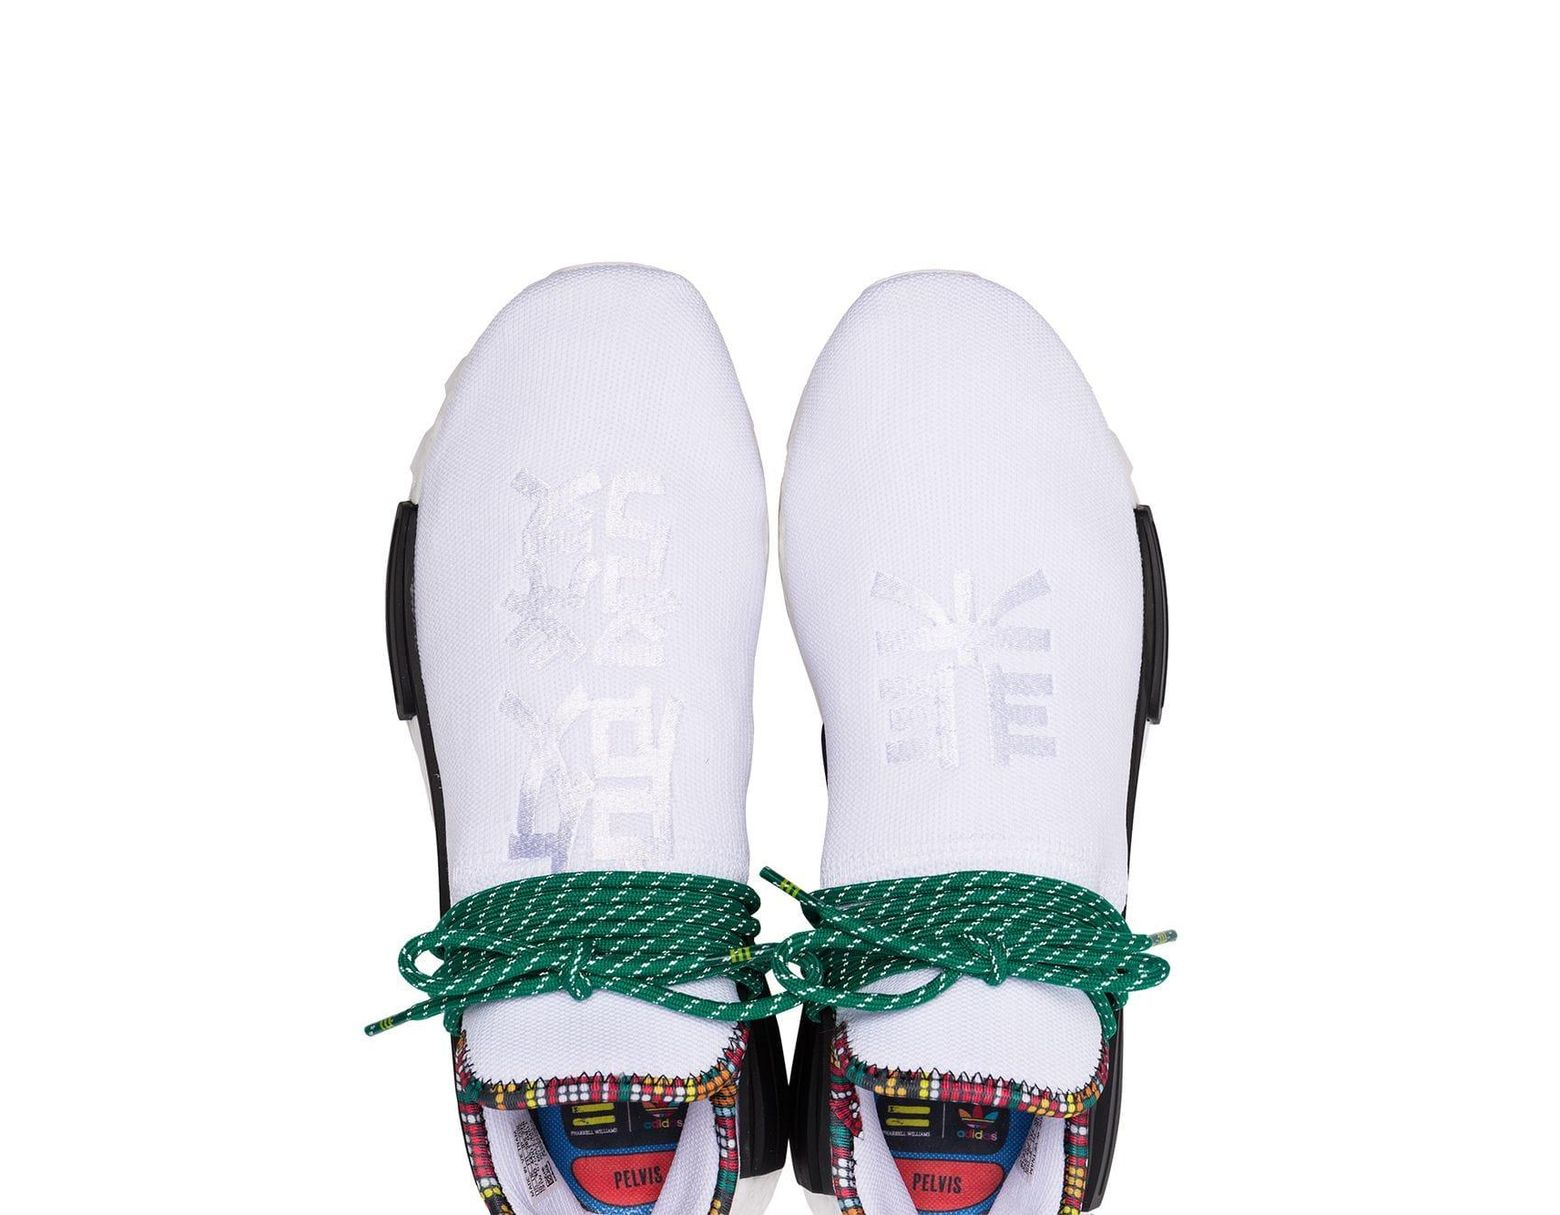 5cf279a6be196 Lyst - adidas X Pharrell Williams White Human Body Nmd Sneakers in White  for Men